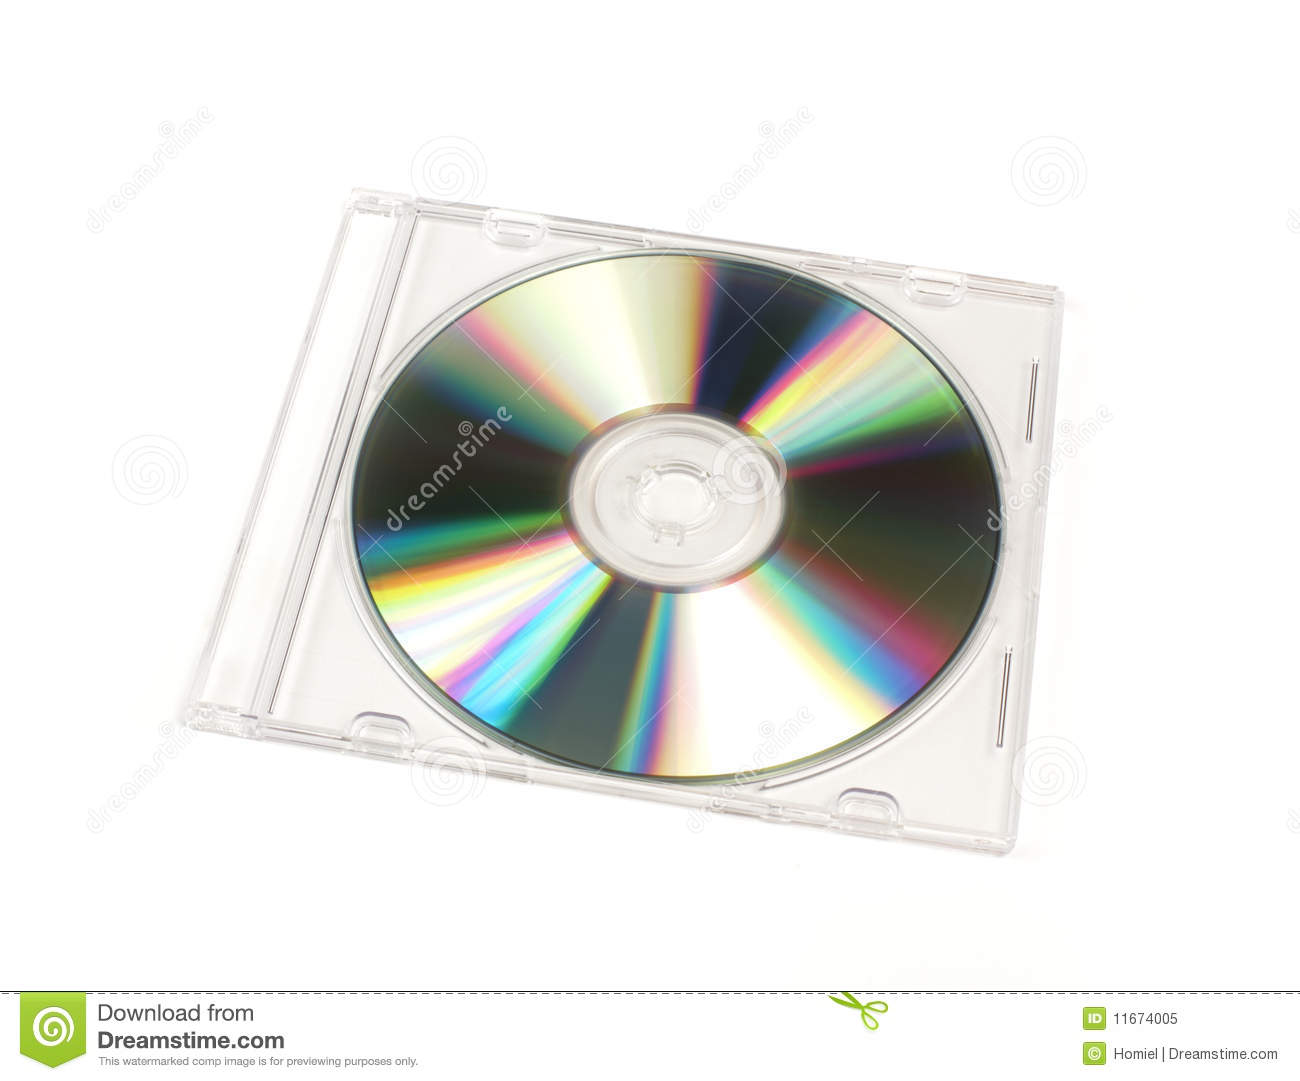 CDDVD Closed Jewel Case Template Royalty Free Photo Image – Jewel Case Template